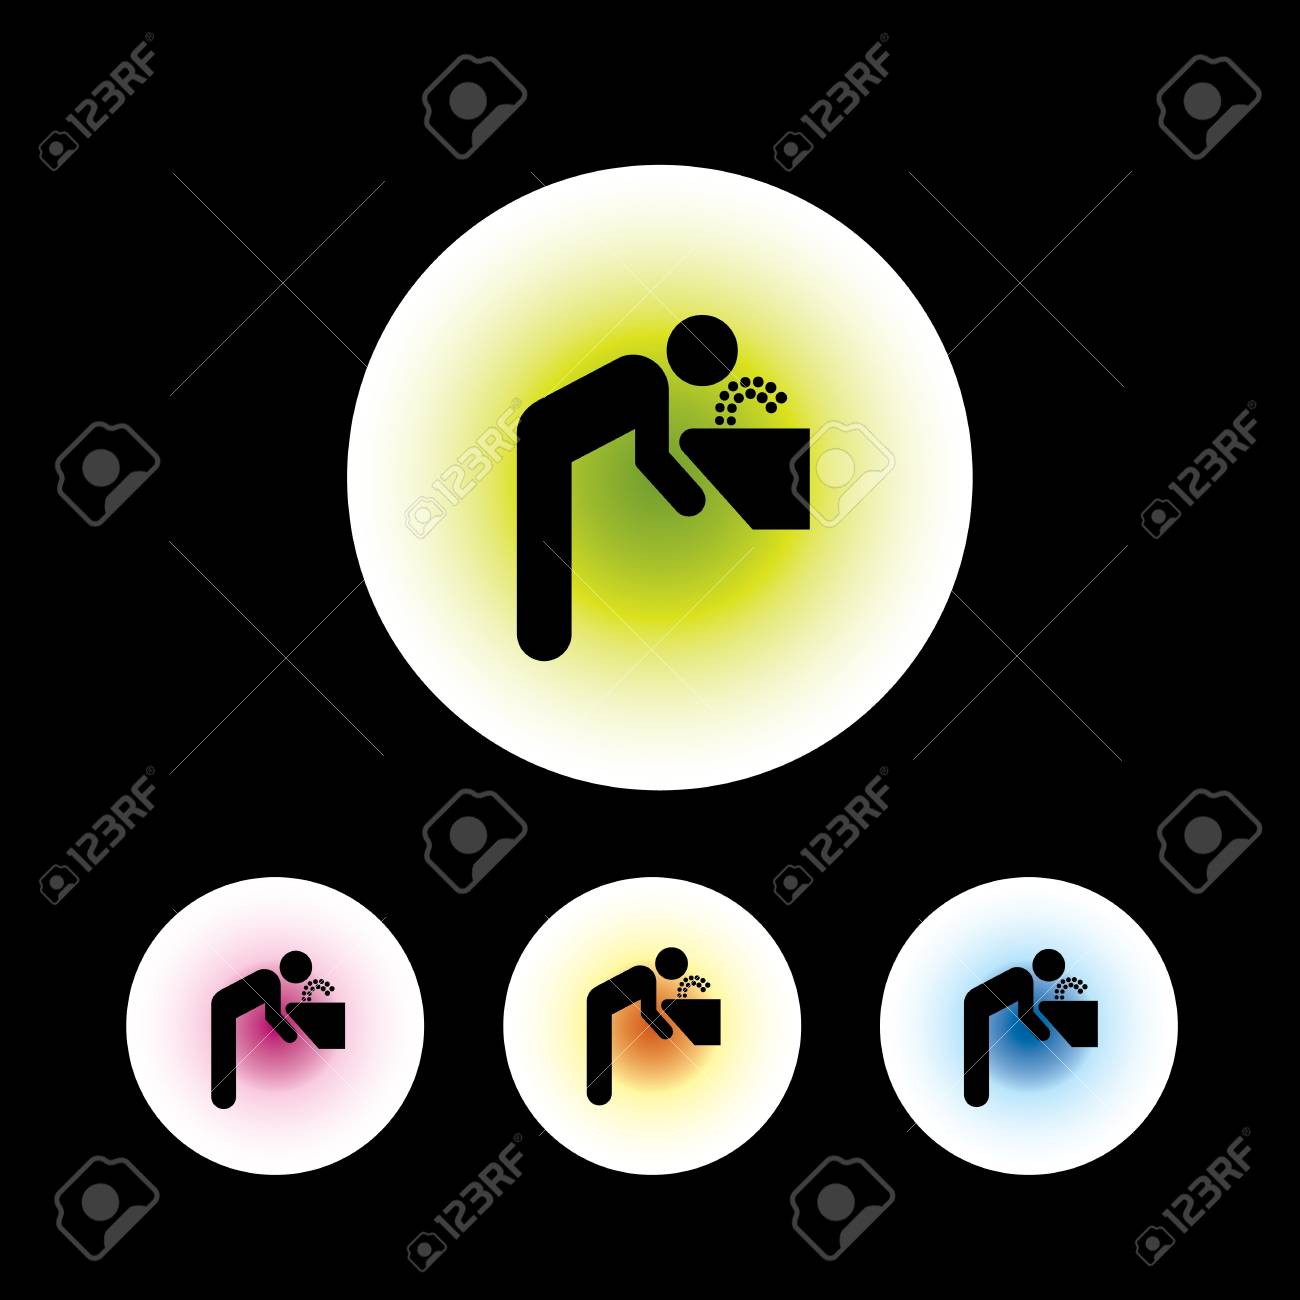 icon set in black background for use Stock Vector - 20864128